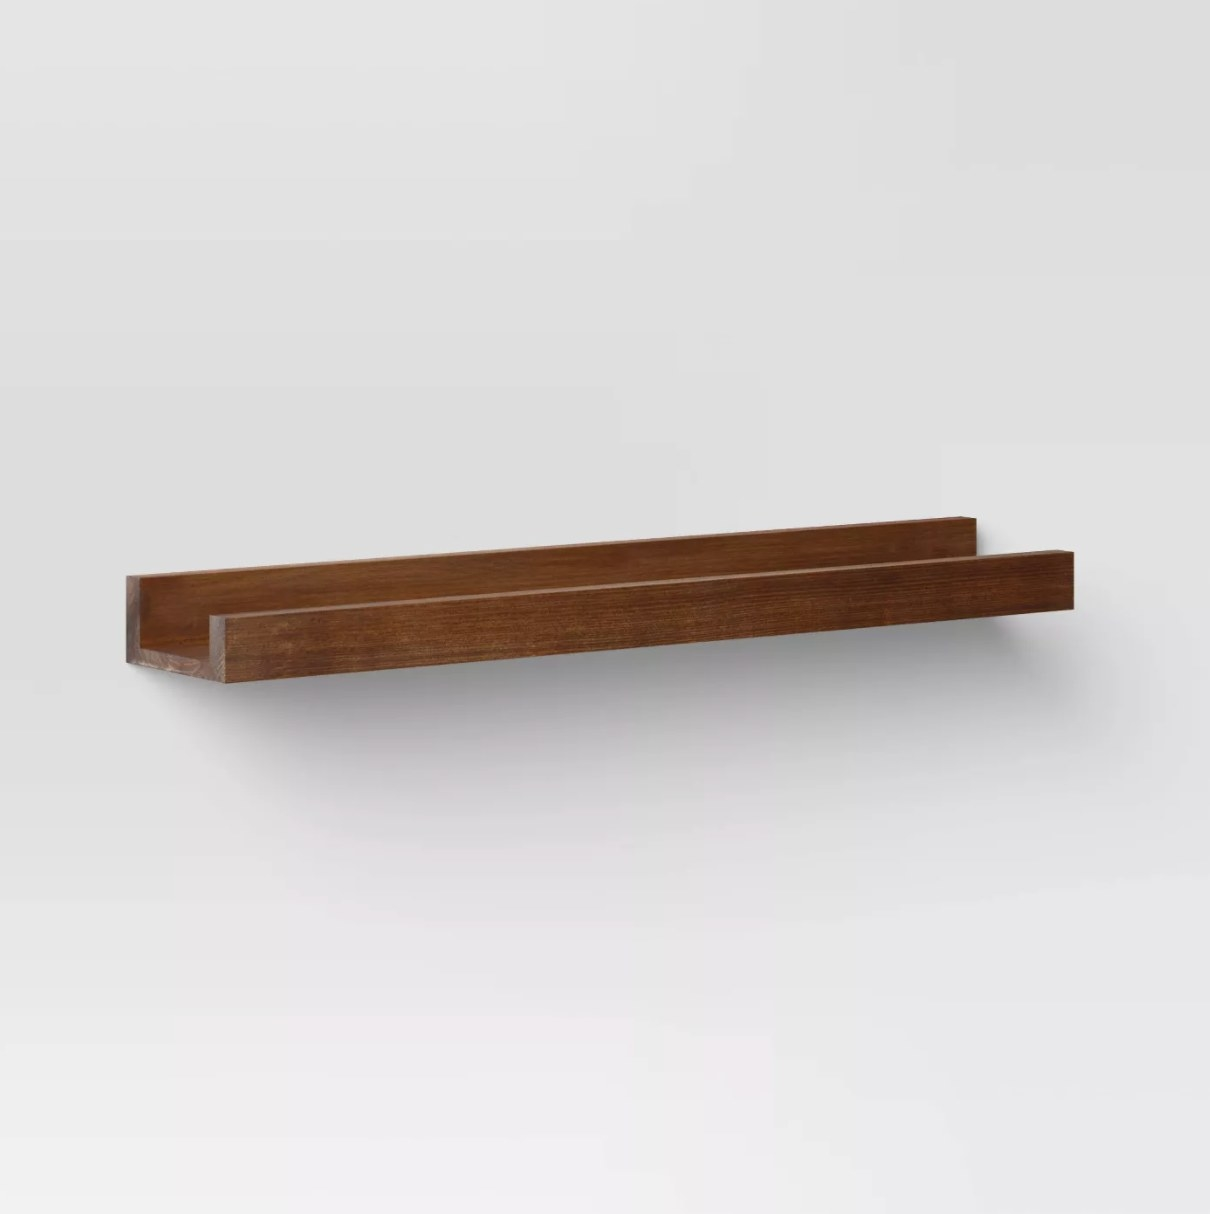 The ledge wall shelf in brown wood